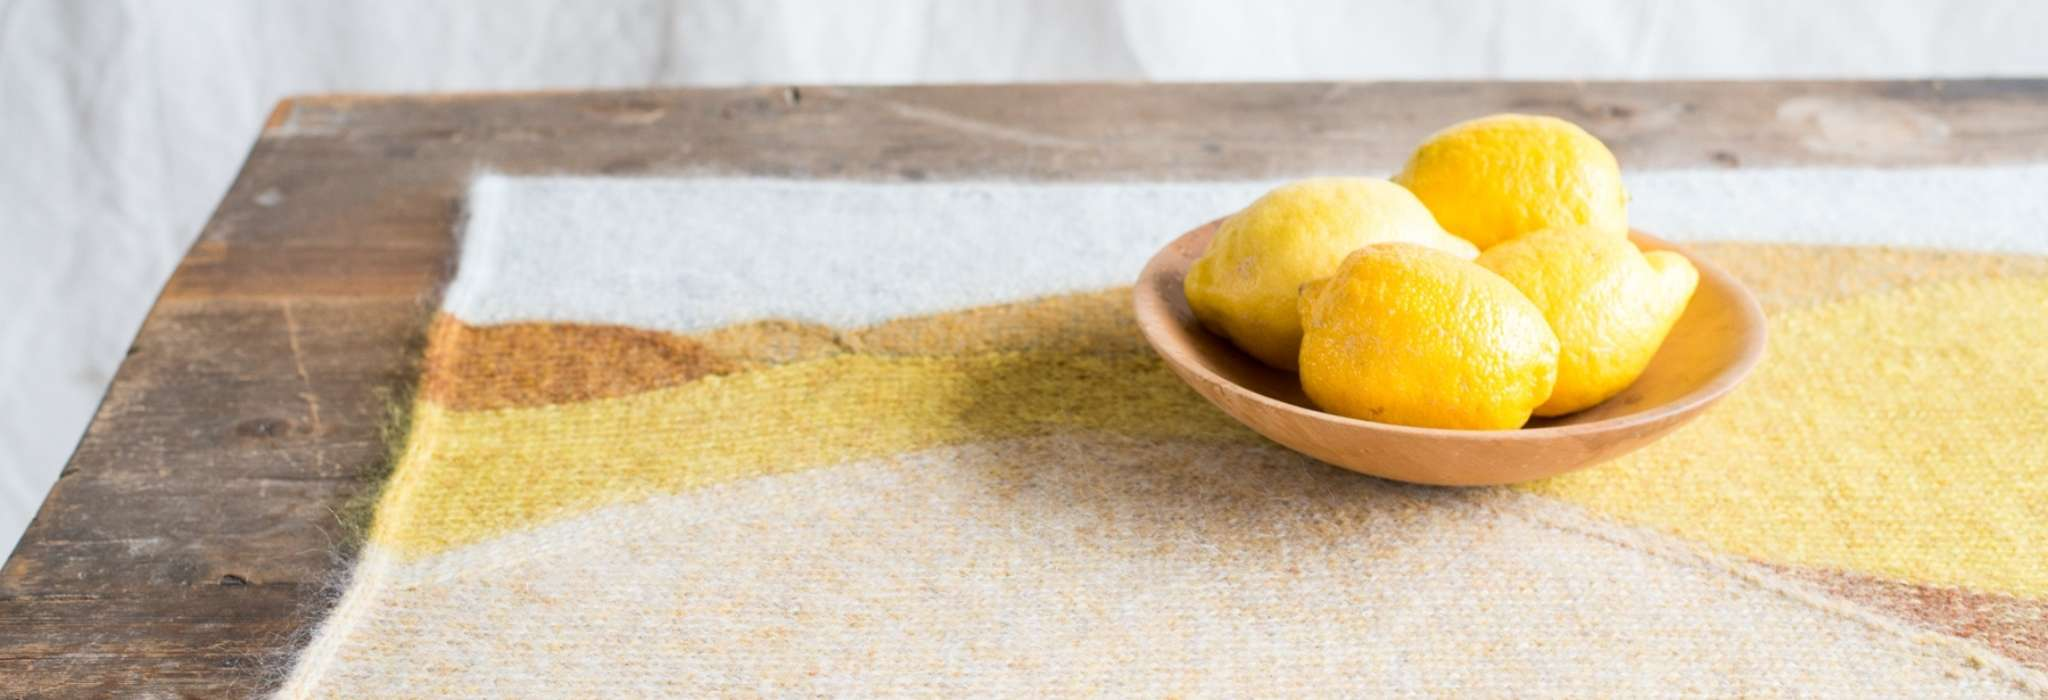 A yellow, orange and white table mat is placed on a wooden table. On top is a small wooden bowl holding four lemons.